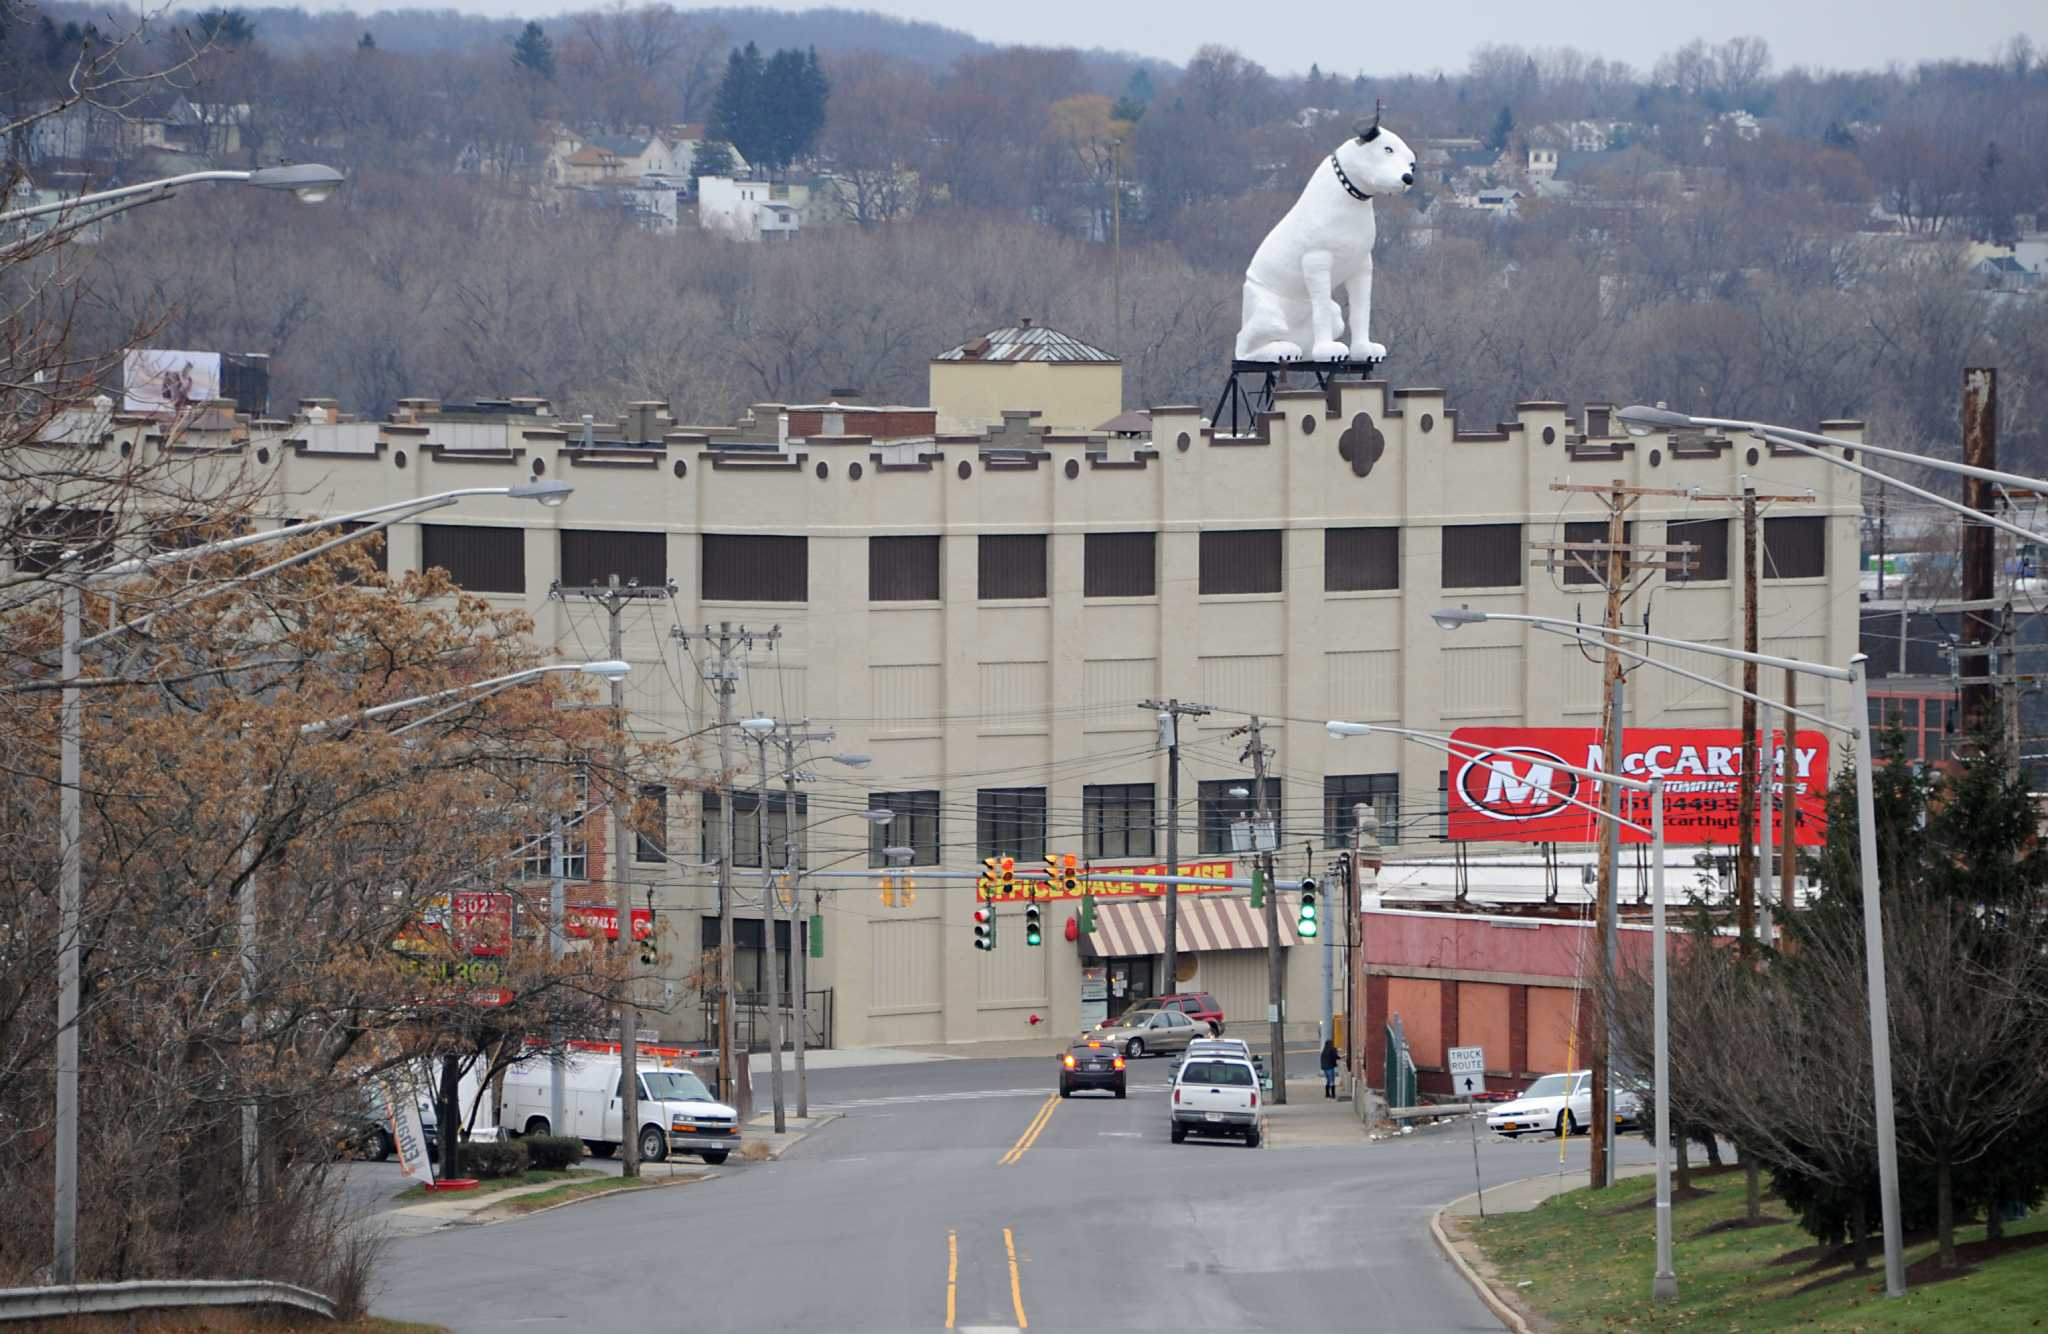 Cars For Sale Albany Ny >> 'Nipper' building for sale - Times Union